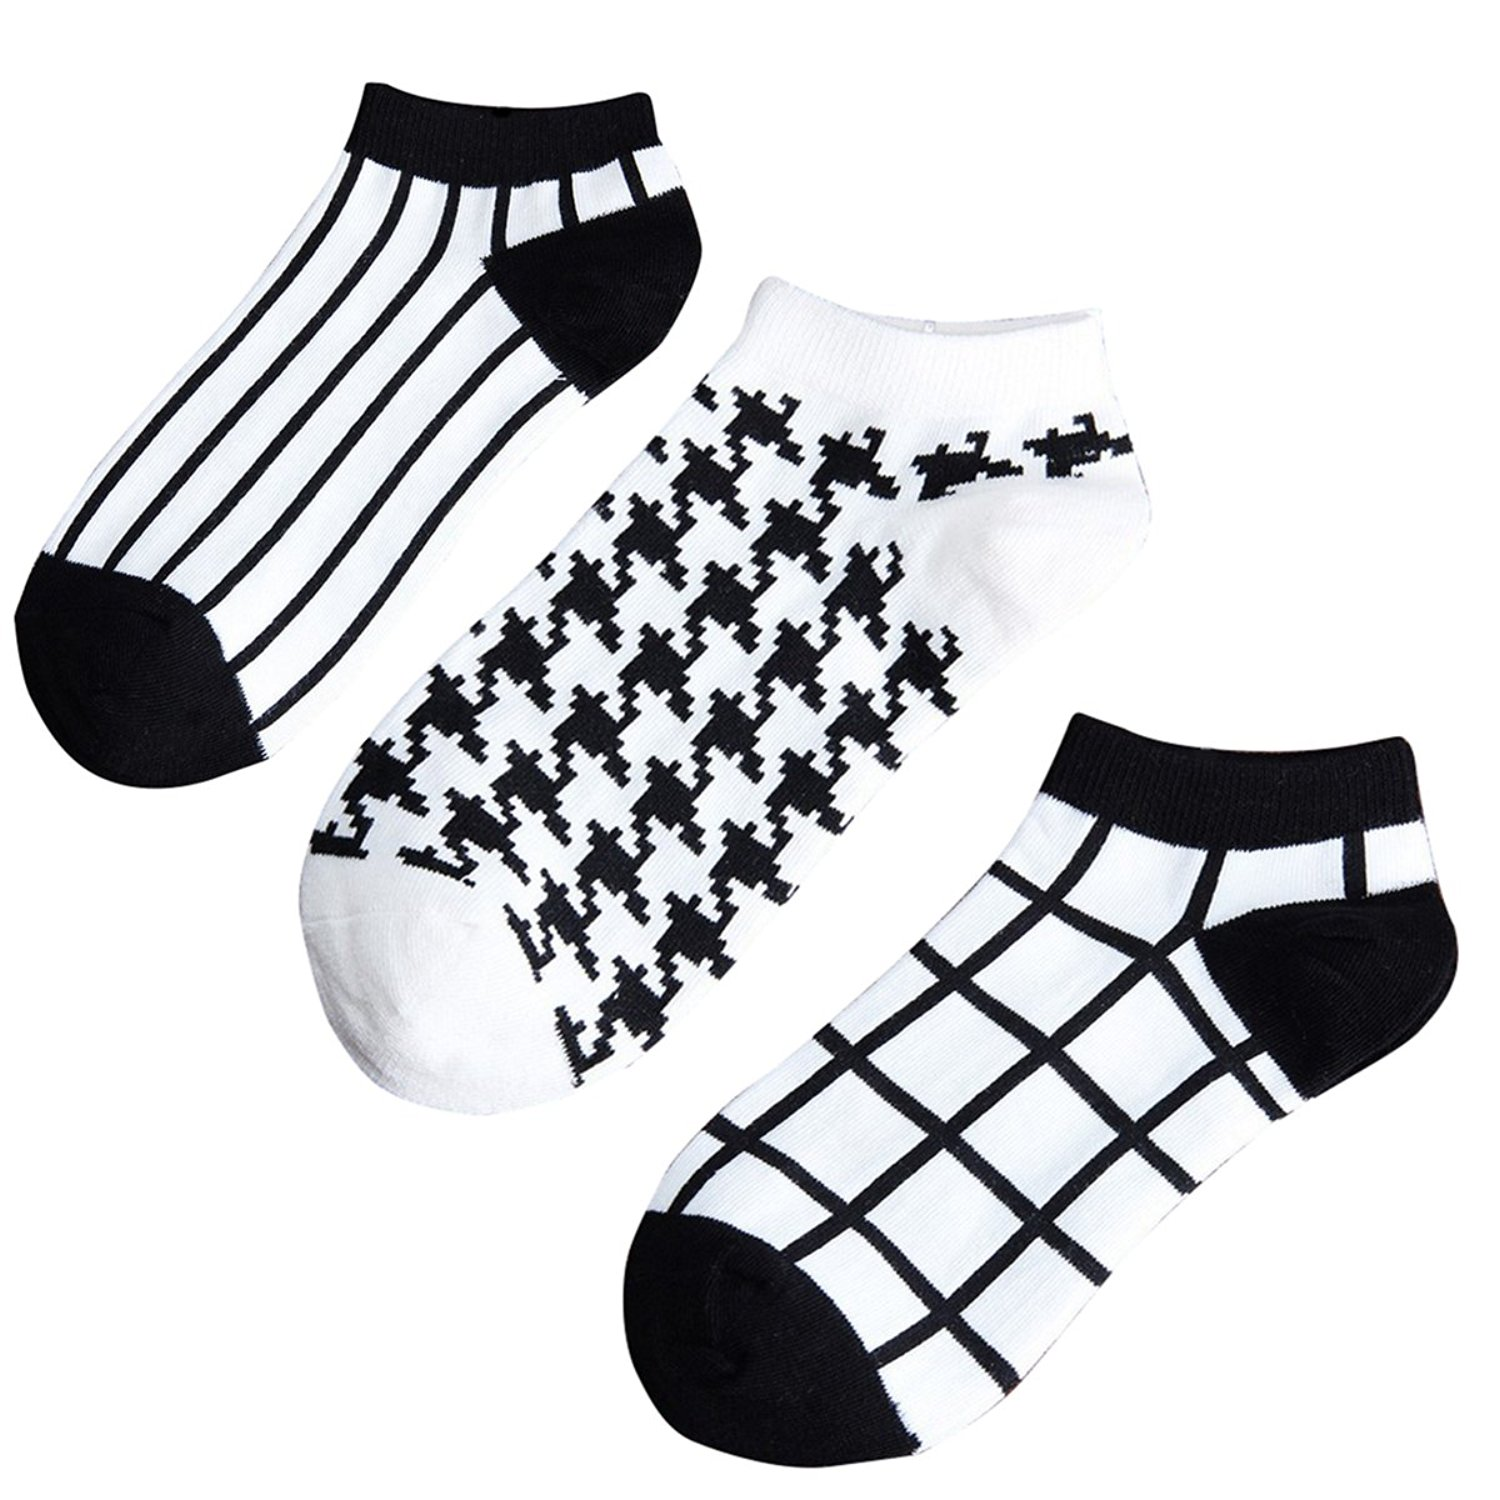 Coco*Store 3Pack Unisex Casual Socks Low Cut Ankle Socks